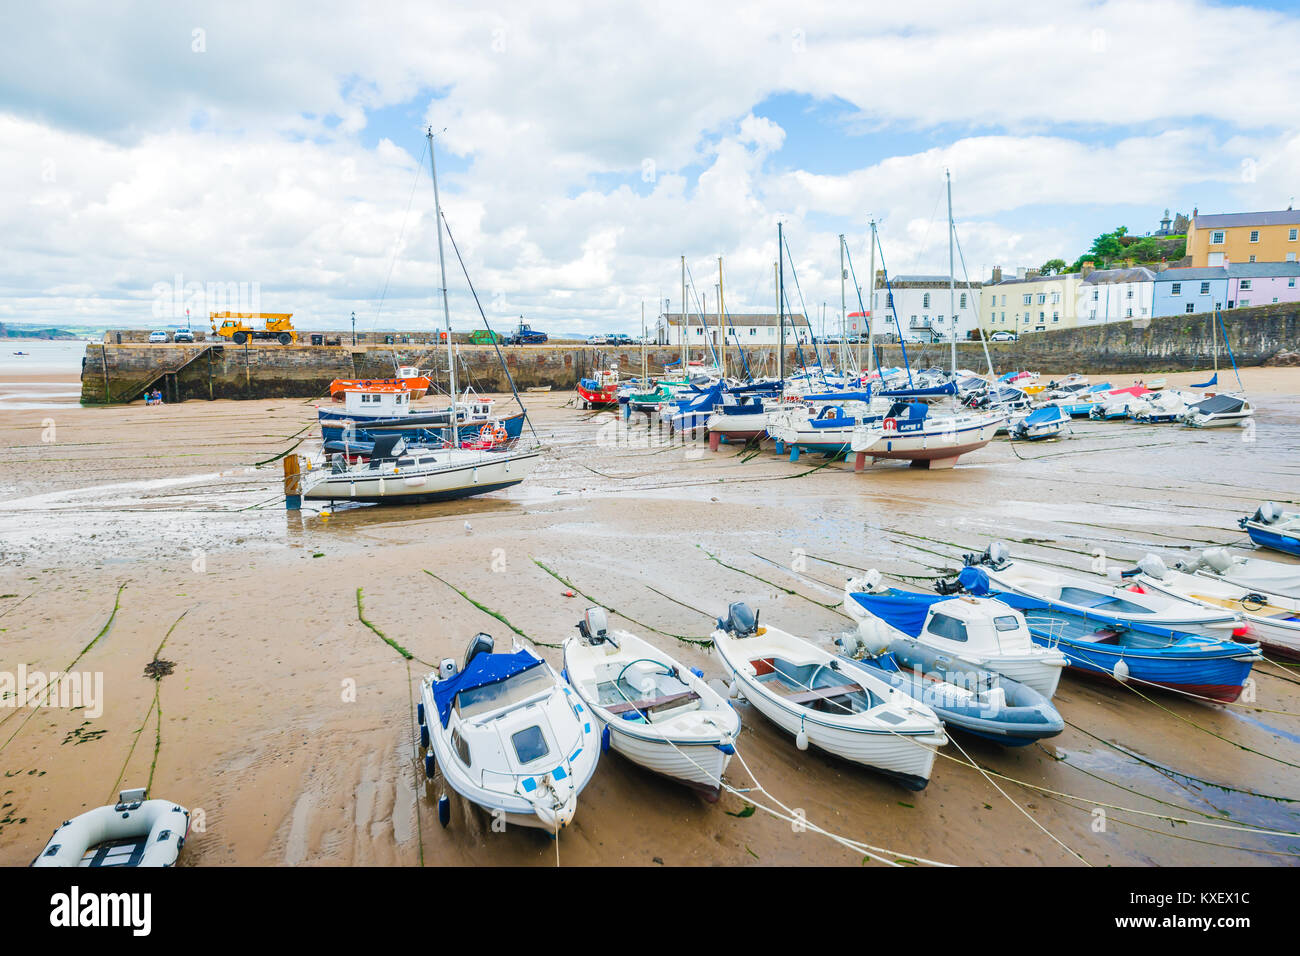 Boats on the sandy beach at low tide in Tenby bay, Wales - Stock Image